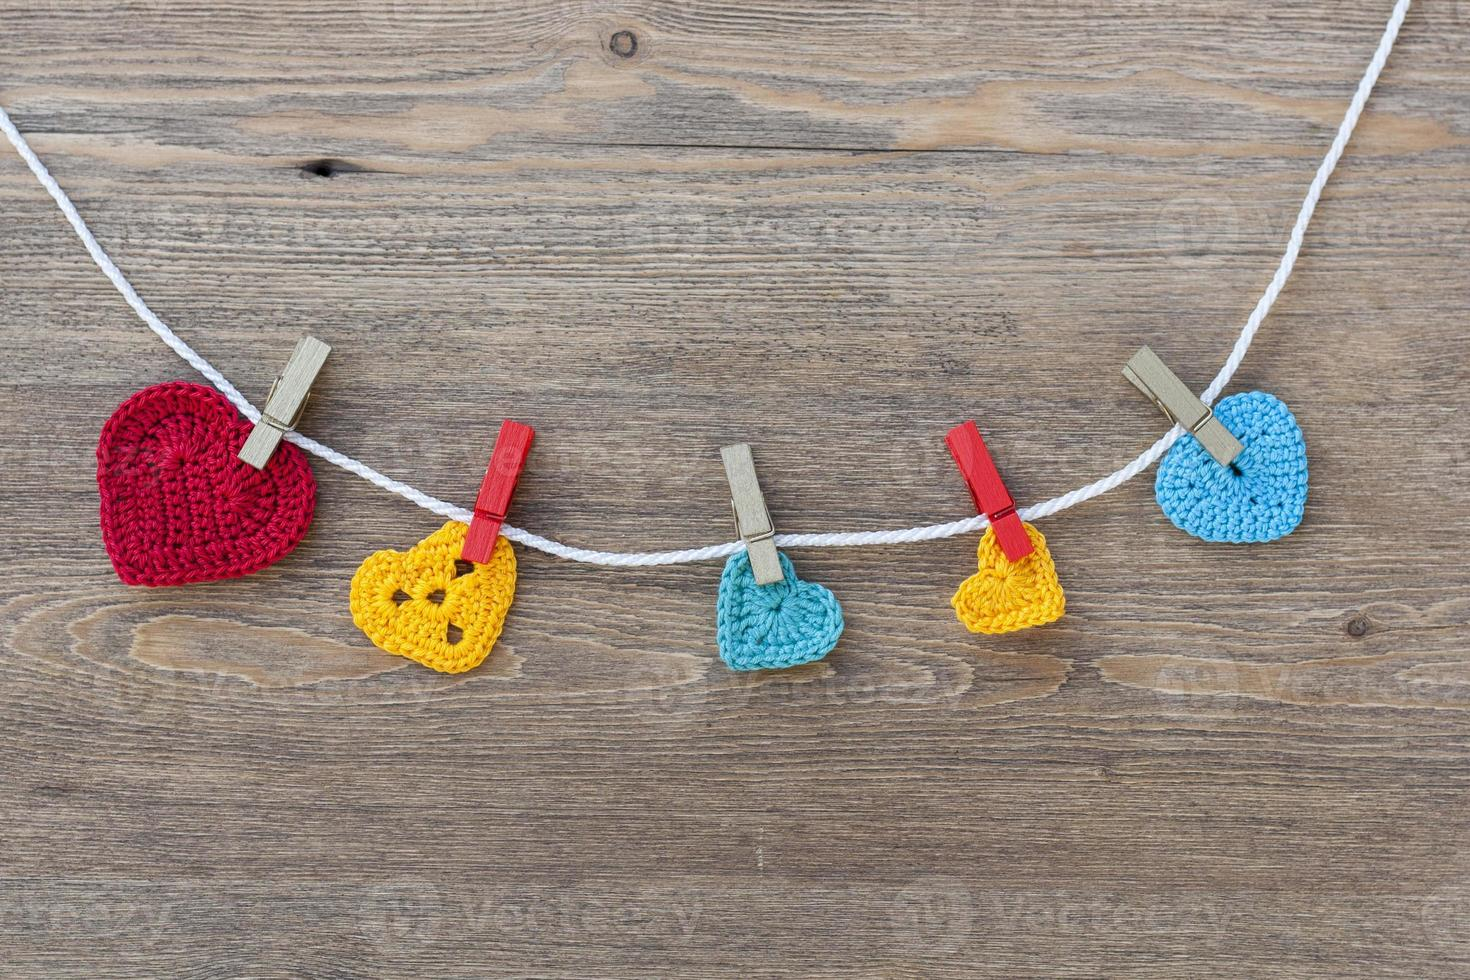 Many multicolor crochet hearts on wooden background for Valentines day photo